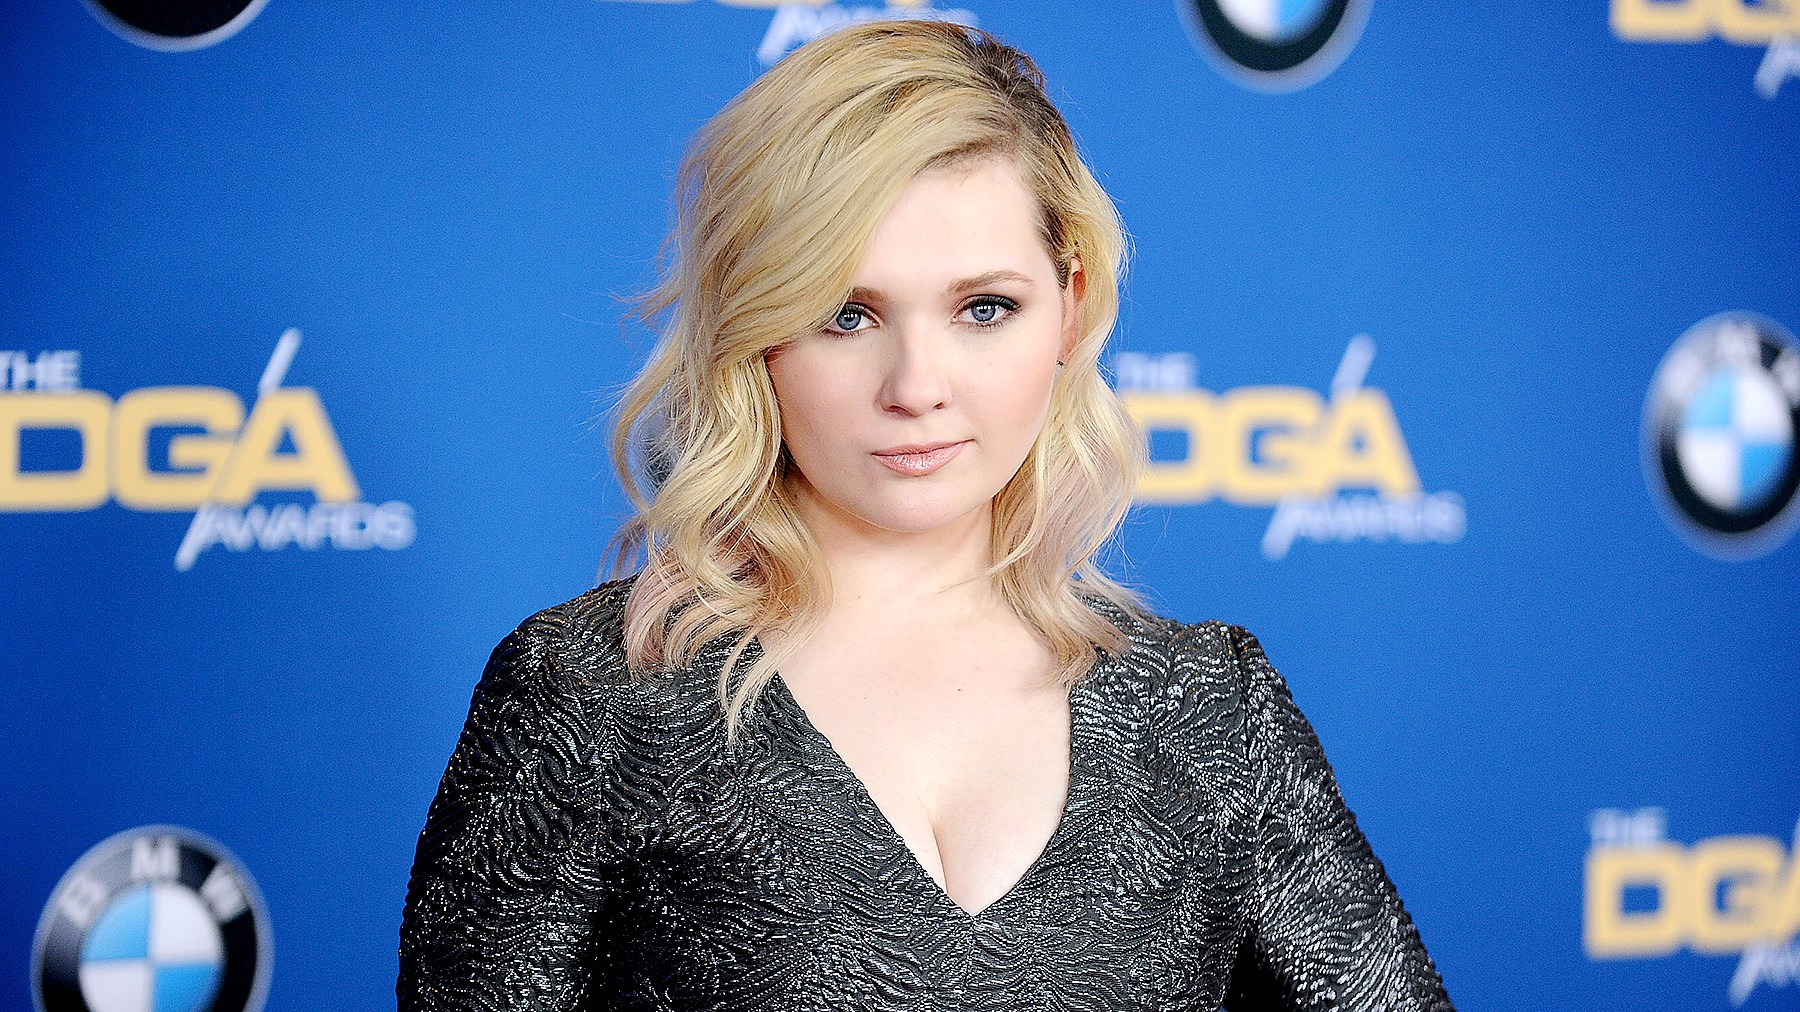 Abigail Breslin attends the 68th annual Directors Guild of America Awards at the Hyatt Regency Century Plaza on February 6, 2016 in Los Angeles, California.